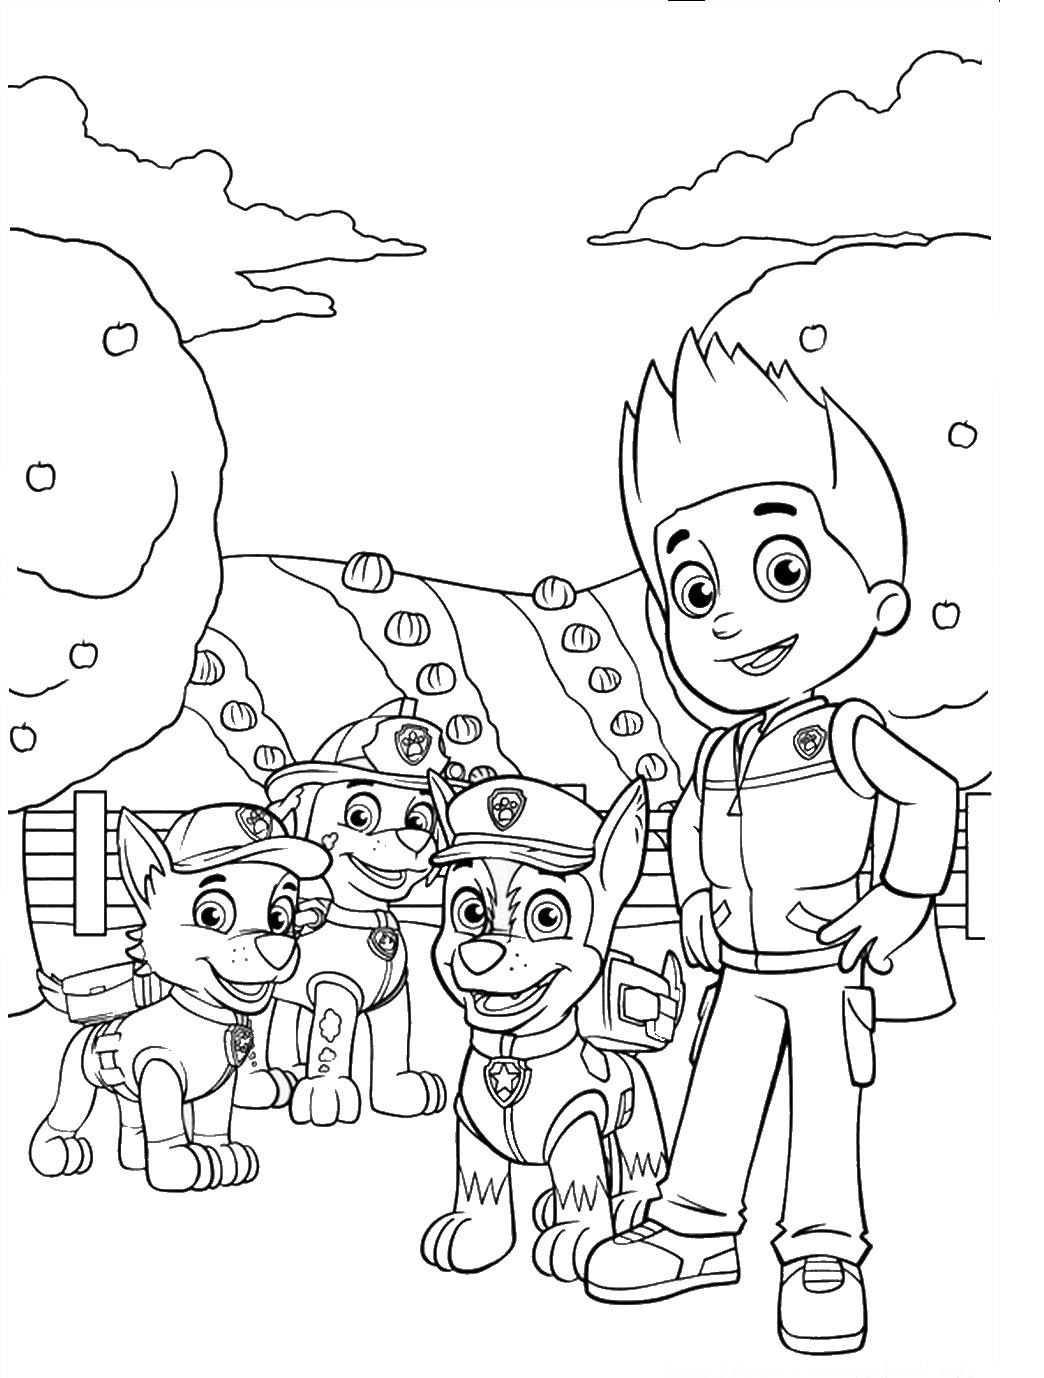 paw patrol coloring pages paw patrol coloring pages 16 print color craft coloring pages paw patrol